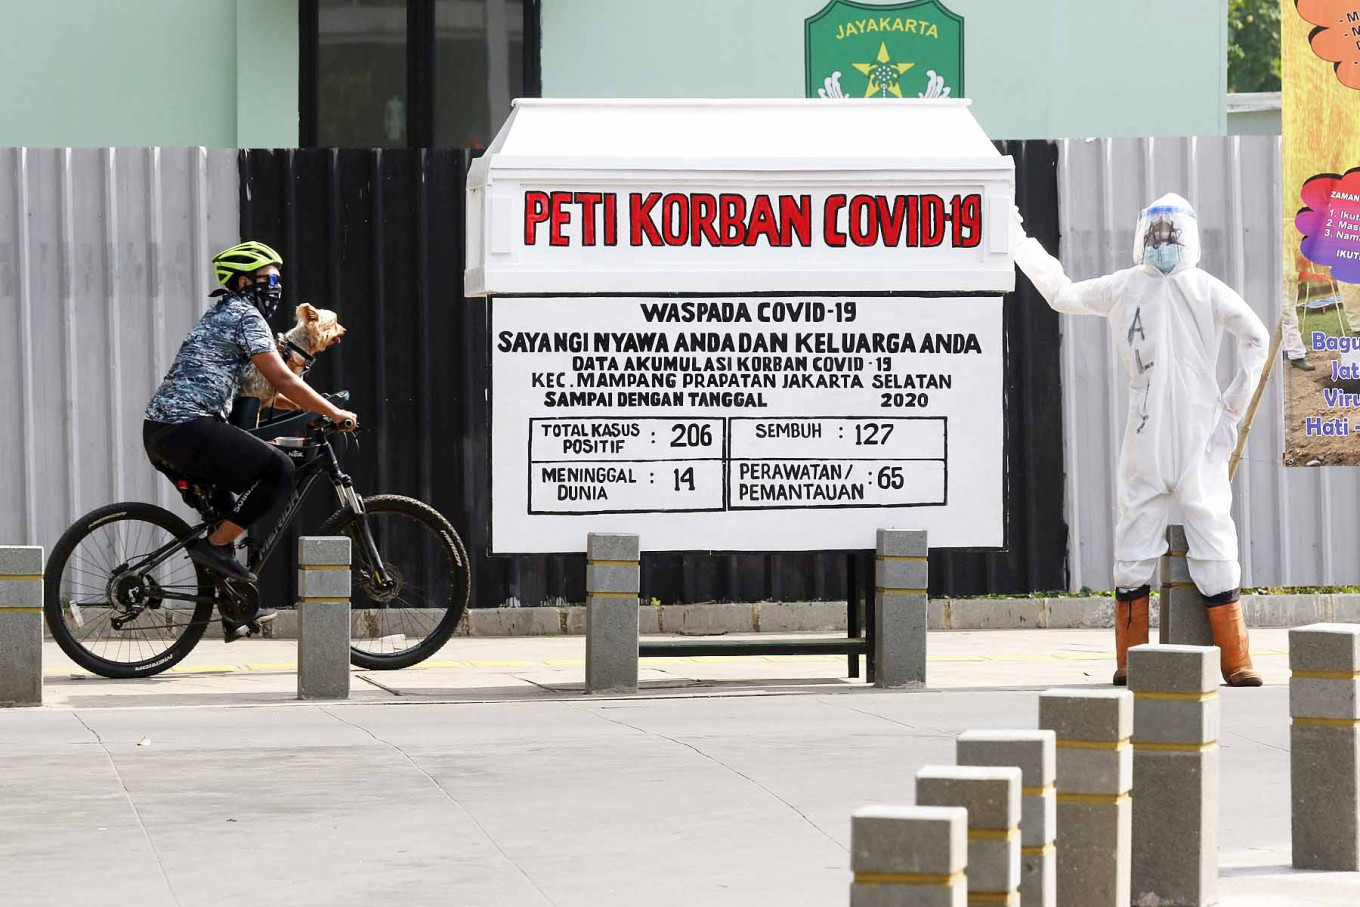 Jakarta sees record-high 1,114 new COVID-19 cases following long weekends